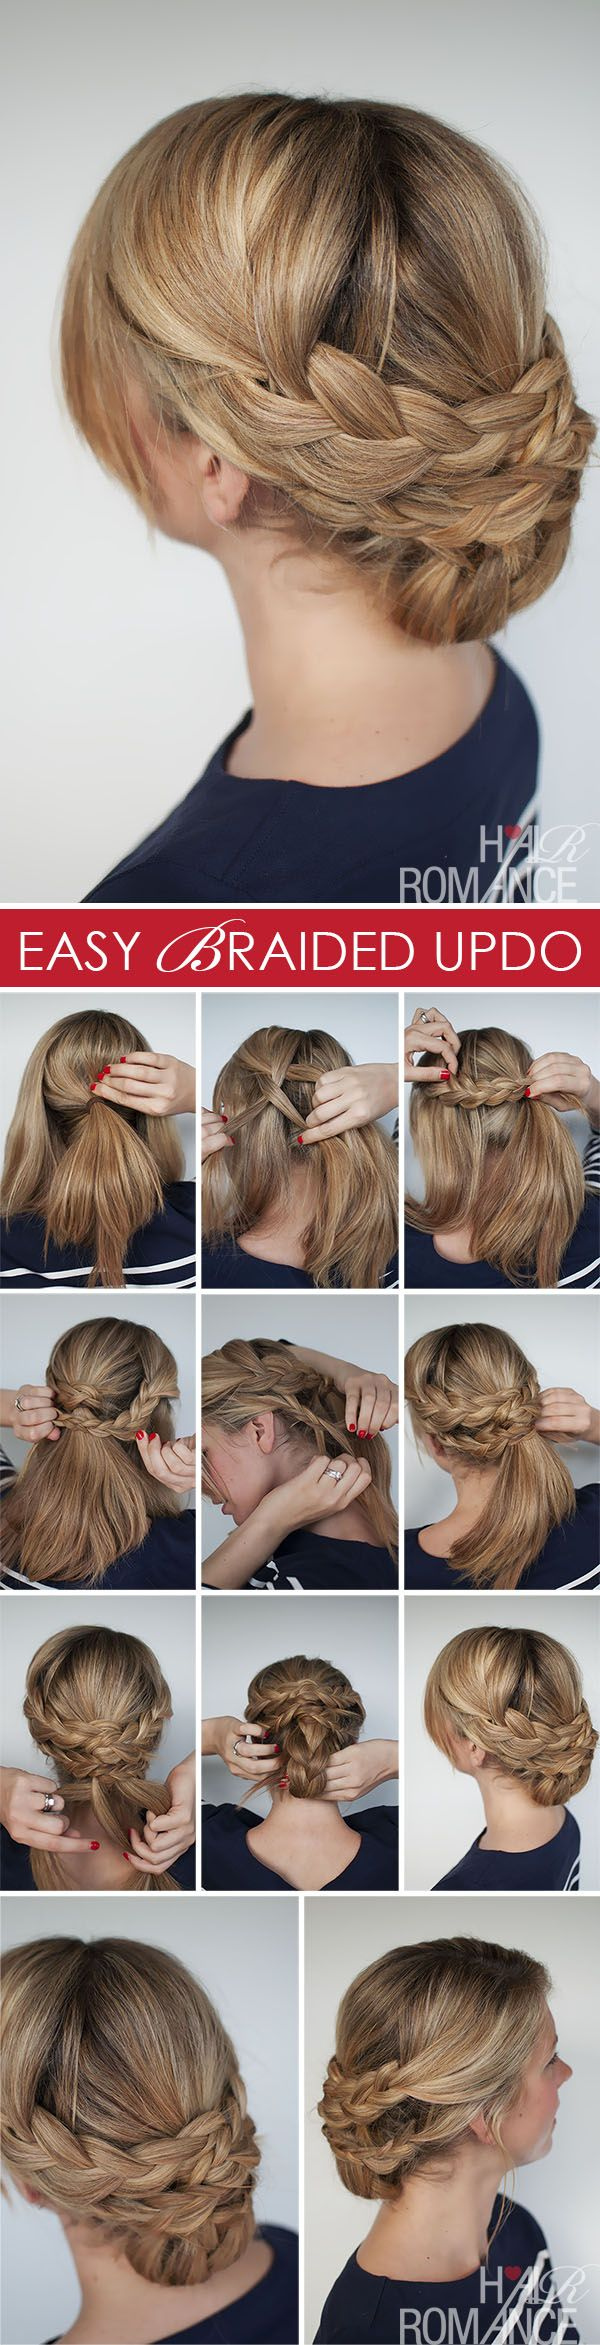 easy braided upstyle tutorial.